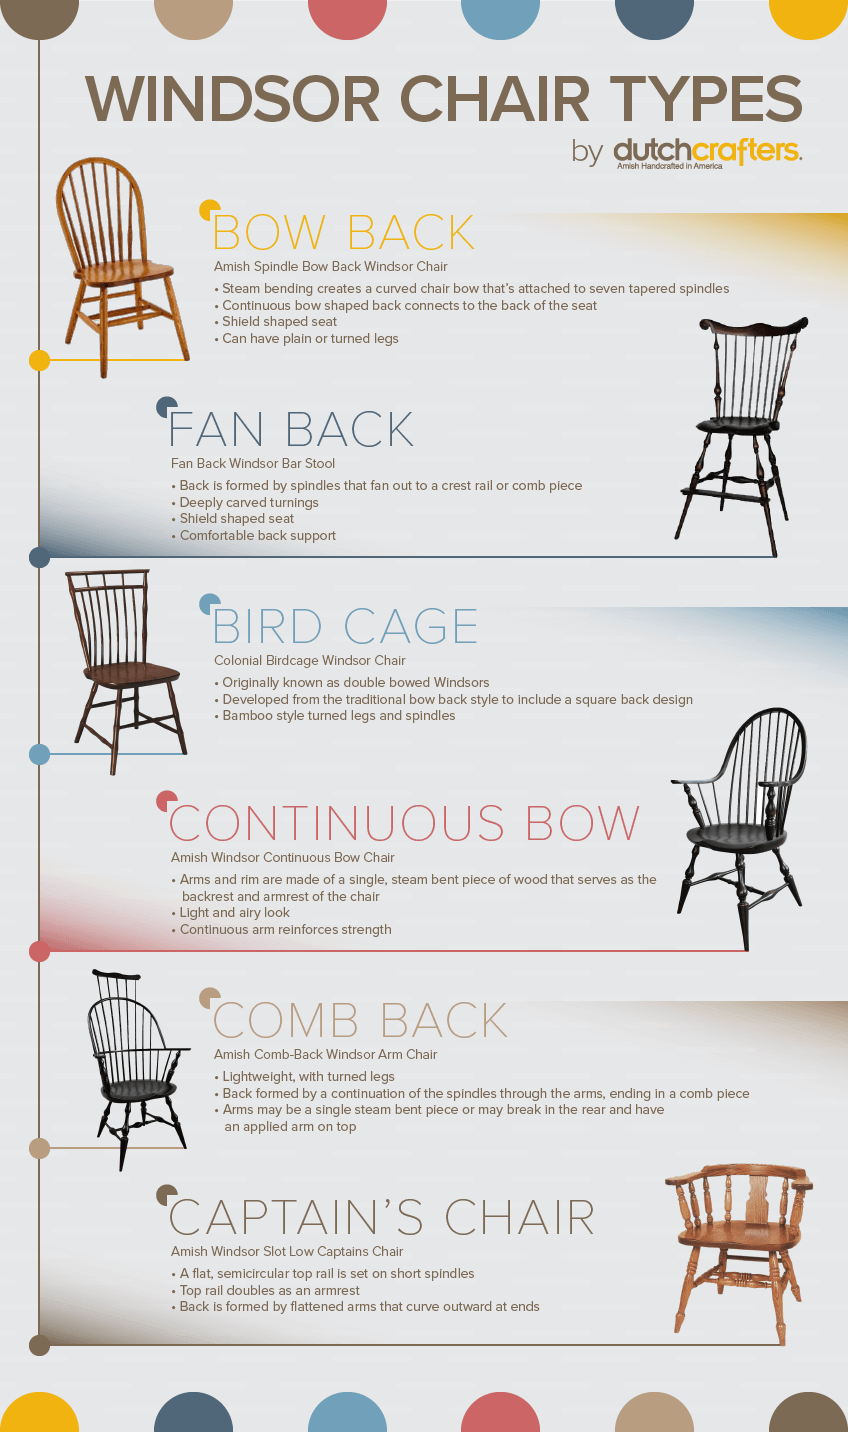 The Windsor Chair Series The Types The Features And The